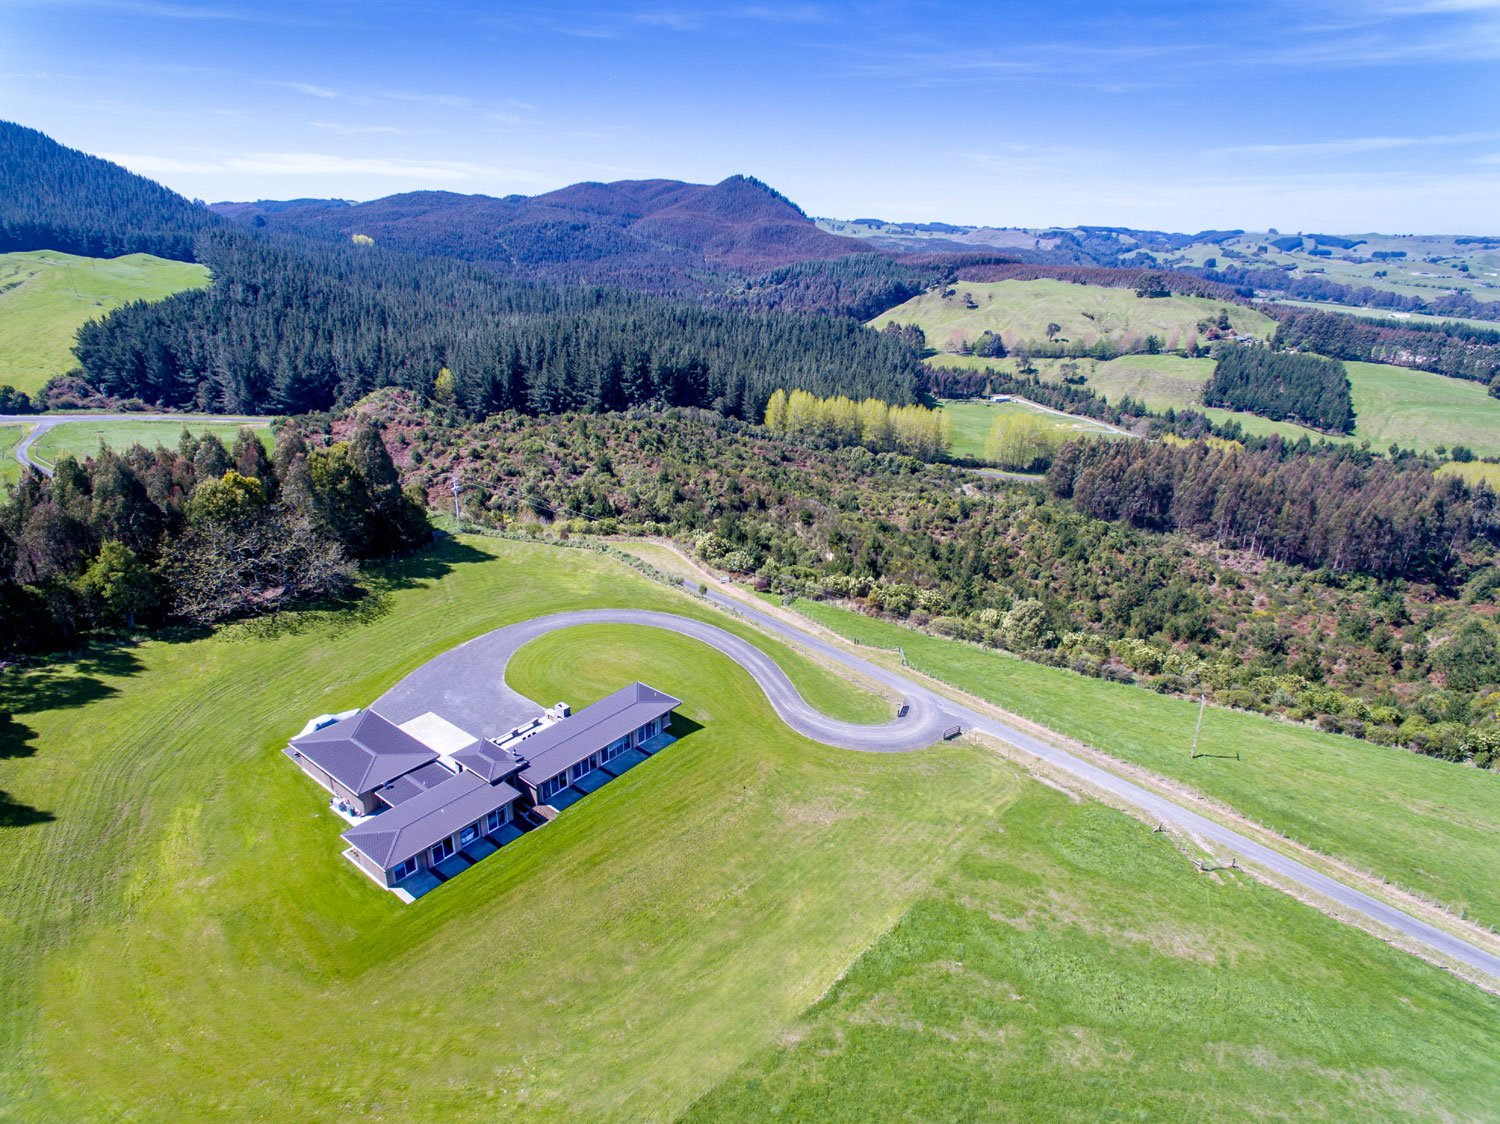 This 265-acre dream estate on New Zealand's North Island is set against the dramatic backdrop of Mount Tongariro and Lake Taupo, New Zealand's largest lake.